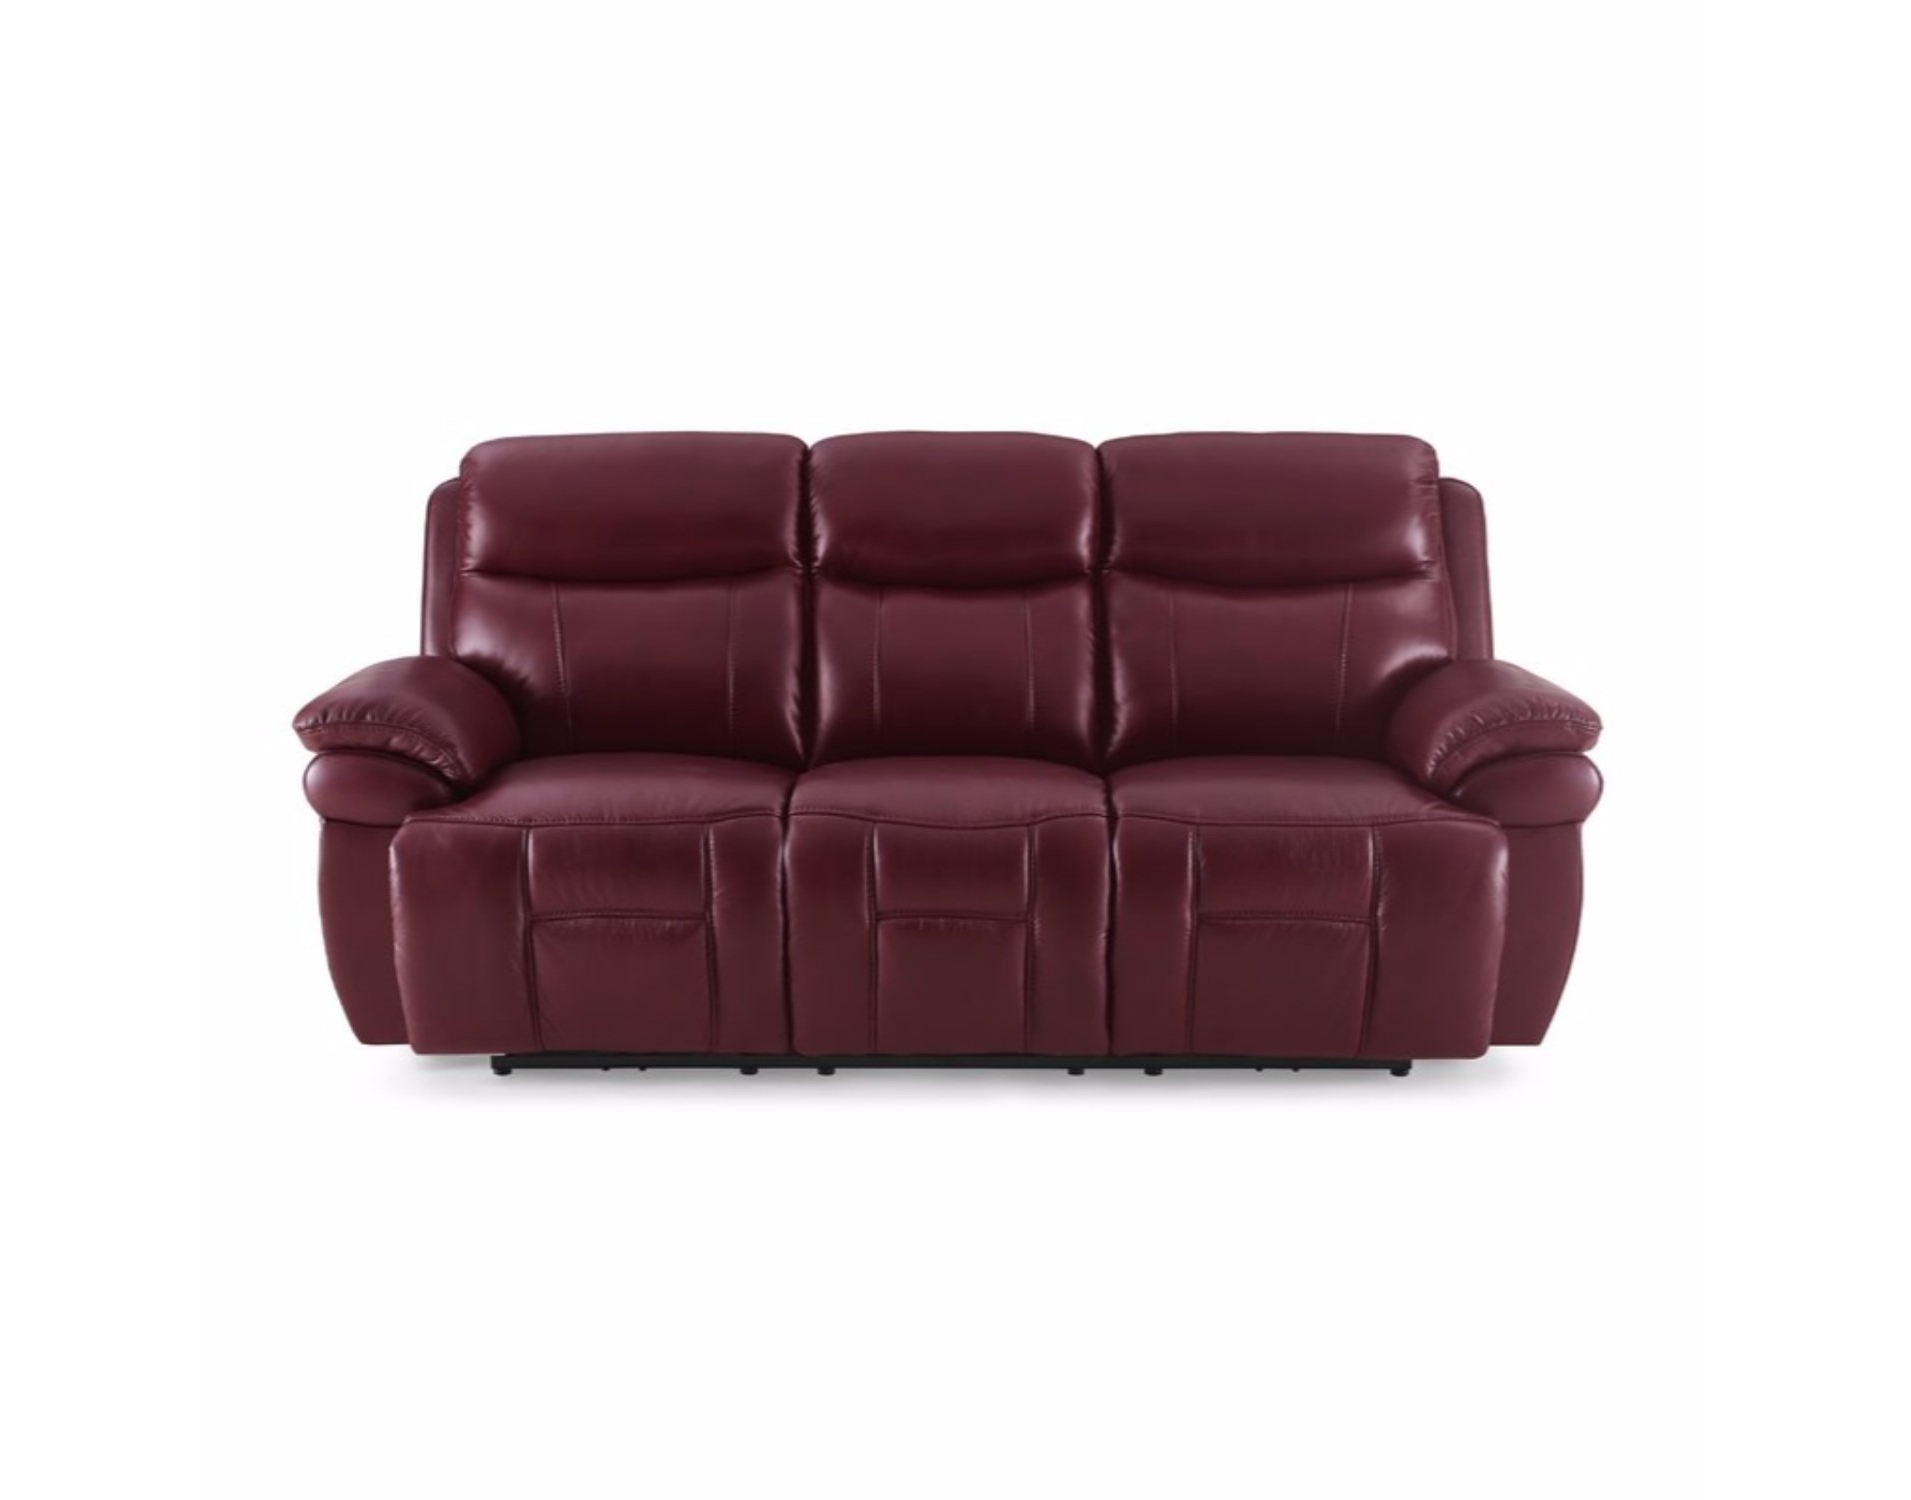 Power Reclining Sofa Vs Manual (View 11 of 20)